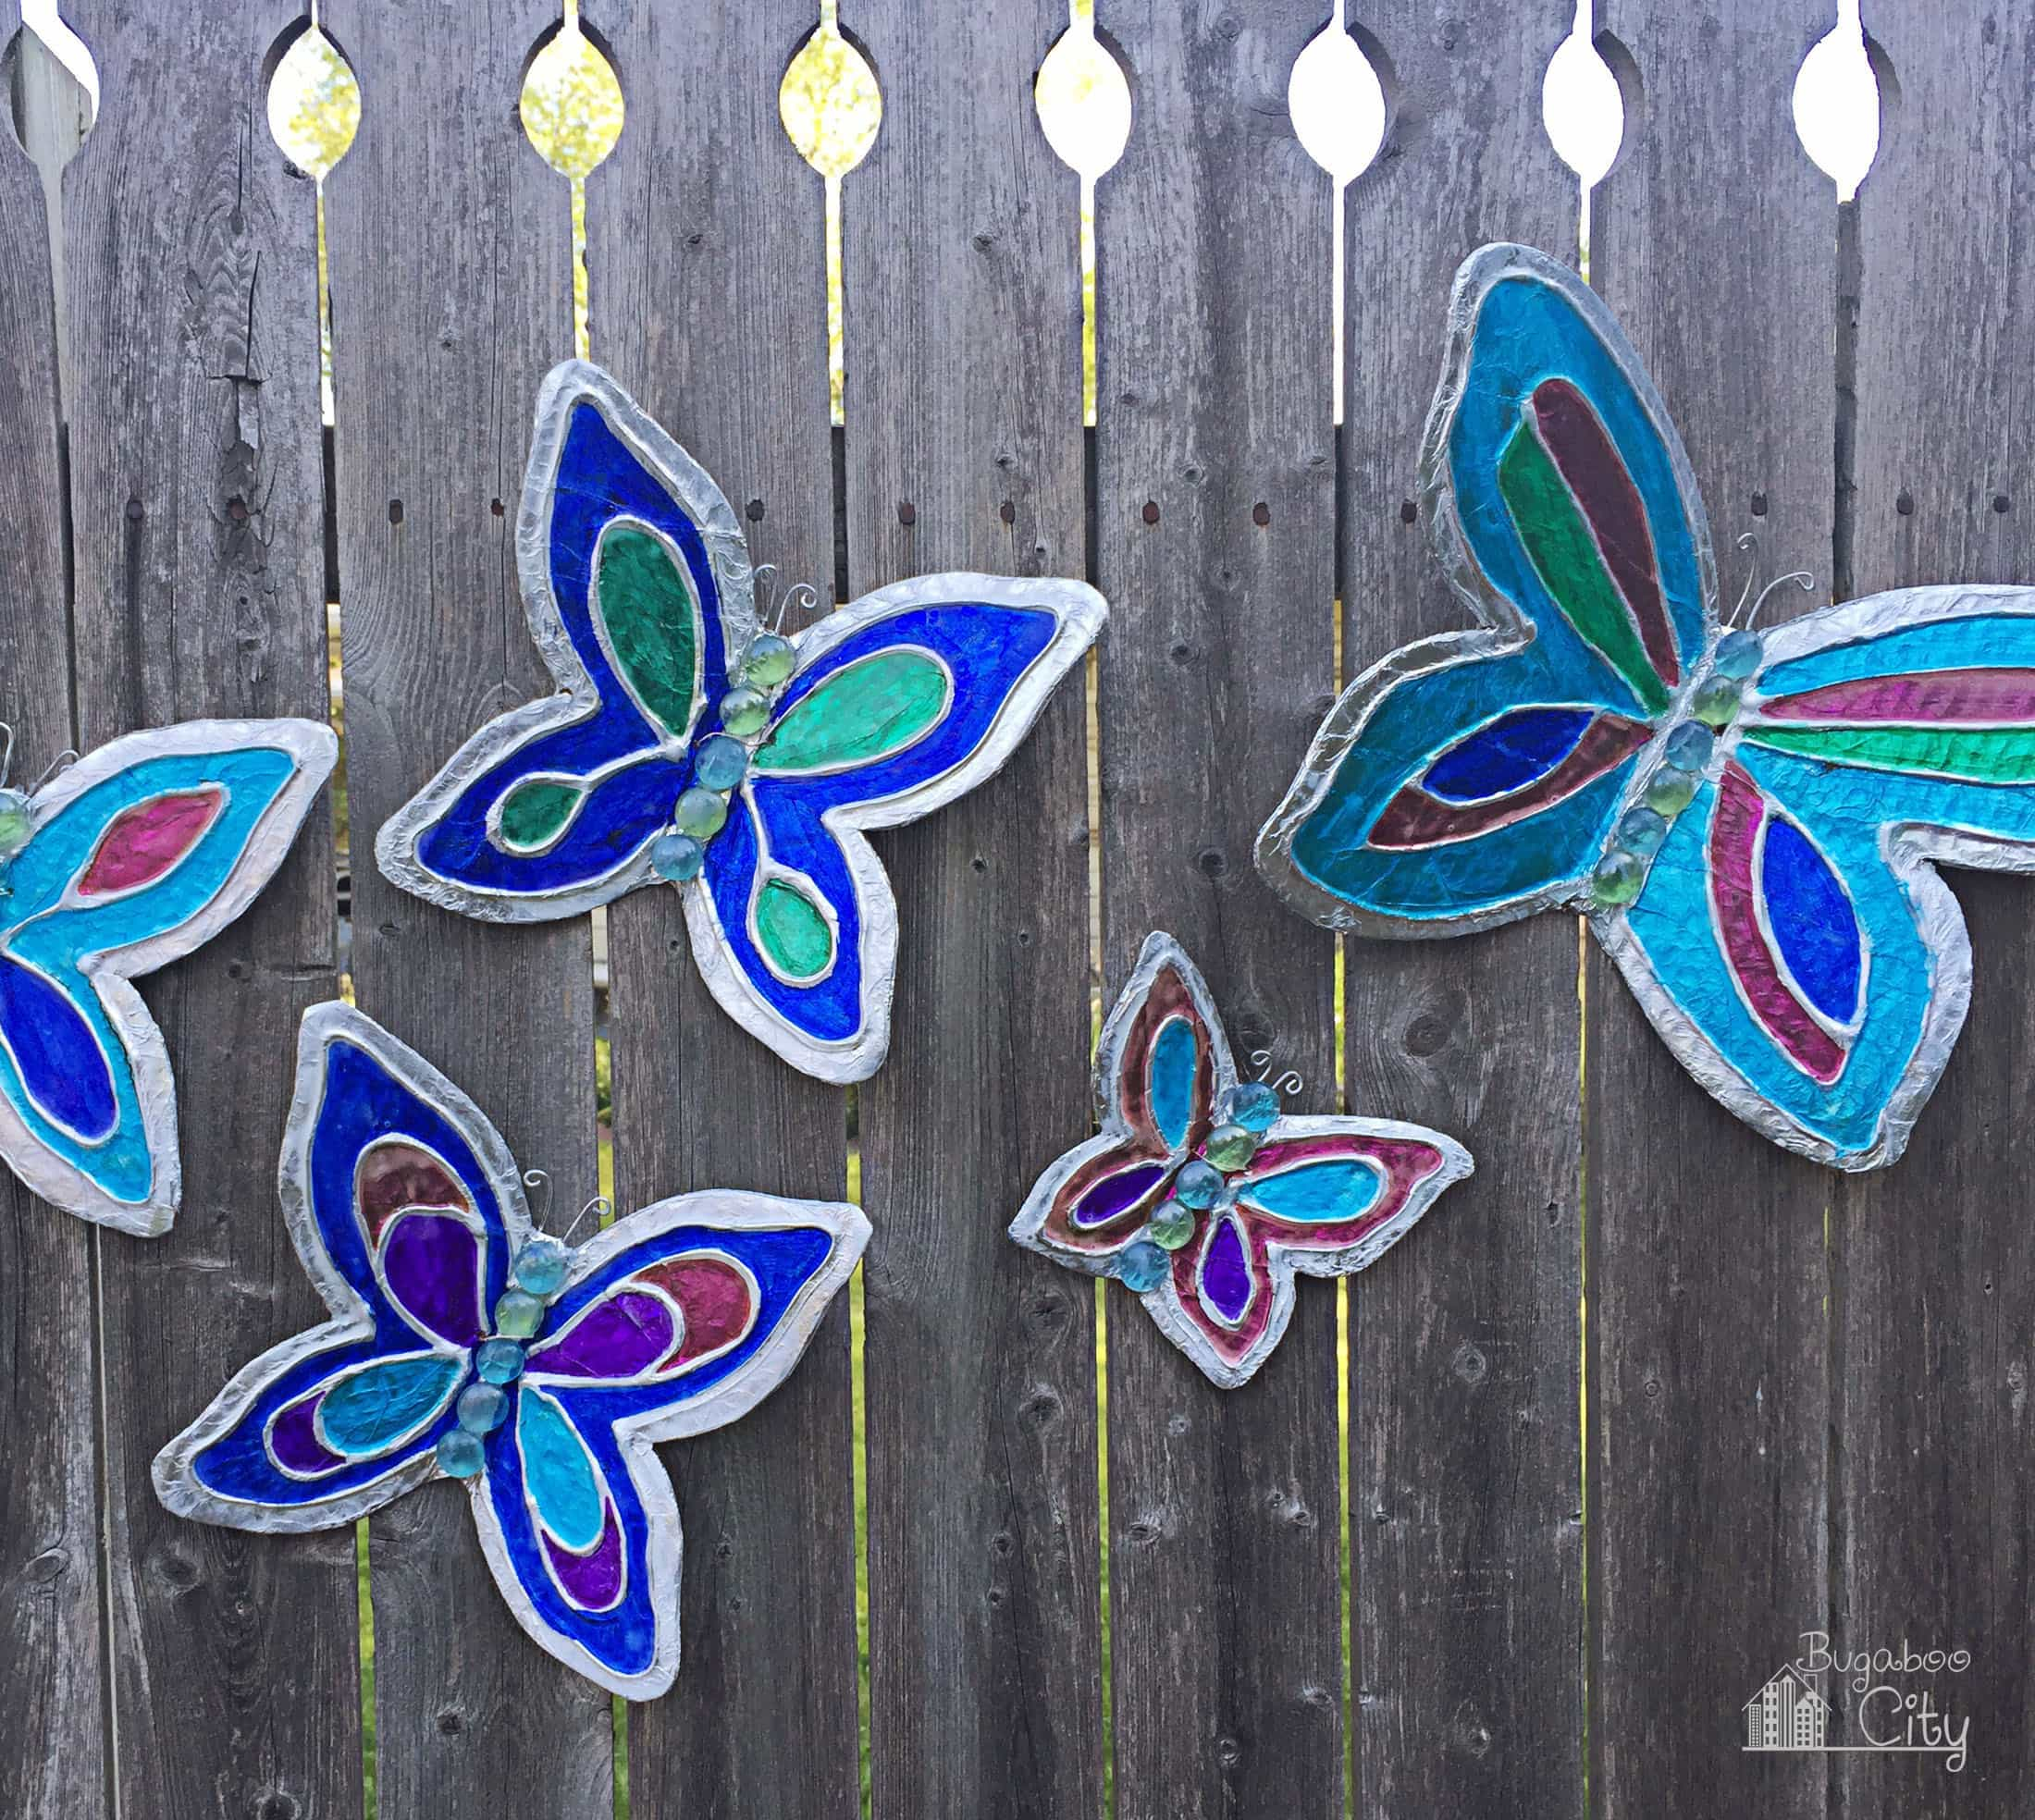 Butterfly lawn ornaments - Diy Butterfly Template Printable Once They Have Dried Your Butterflies Are Finished And Ready To